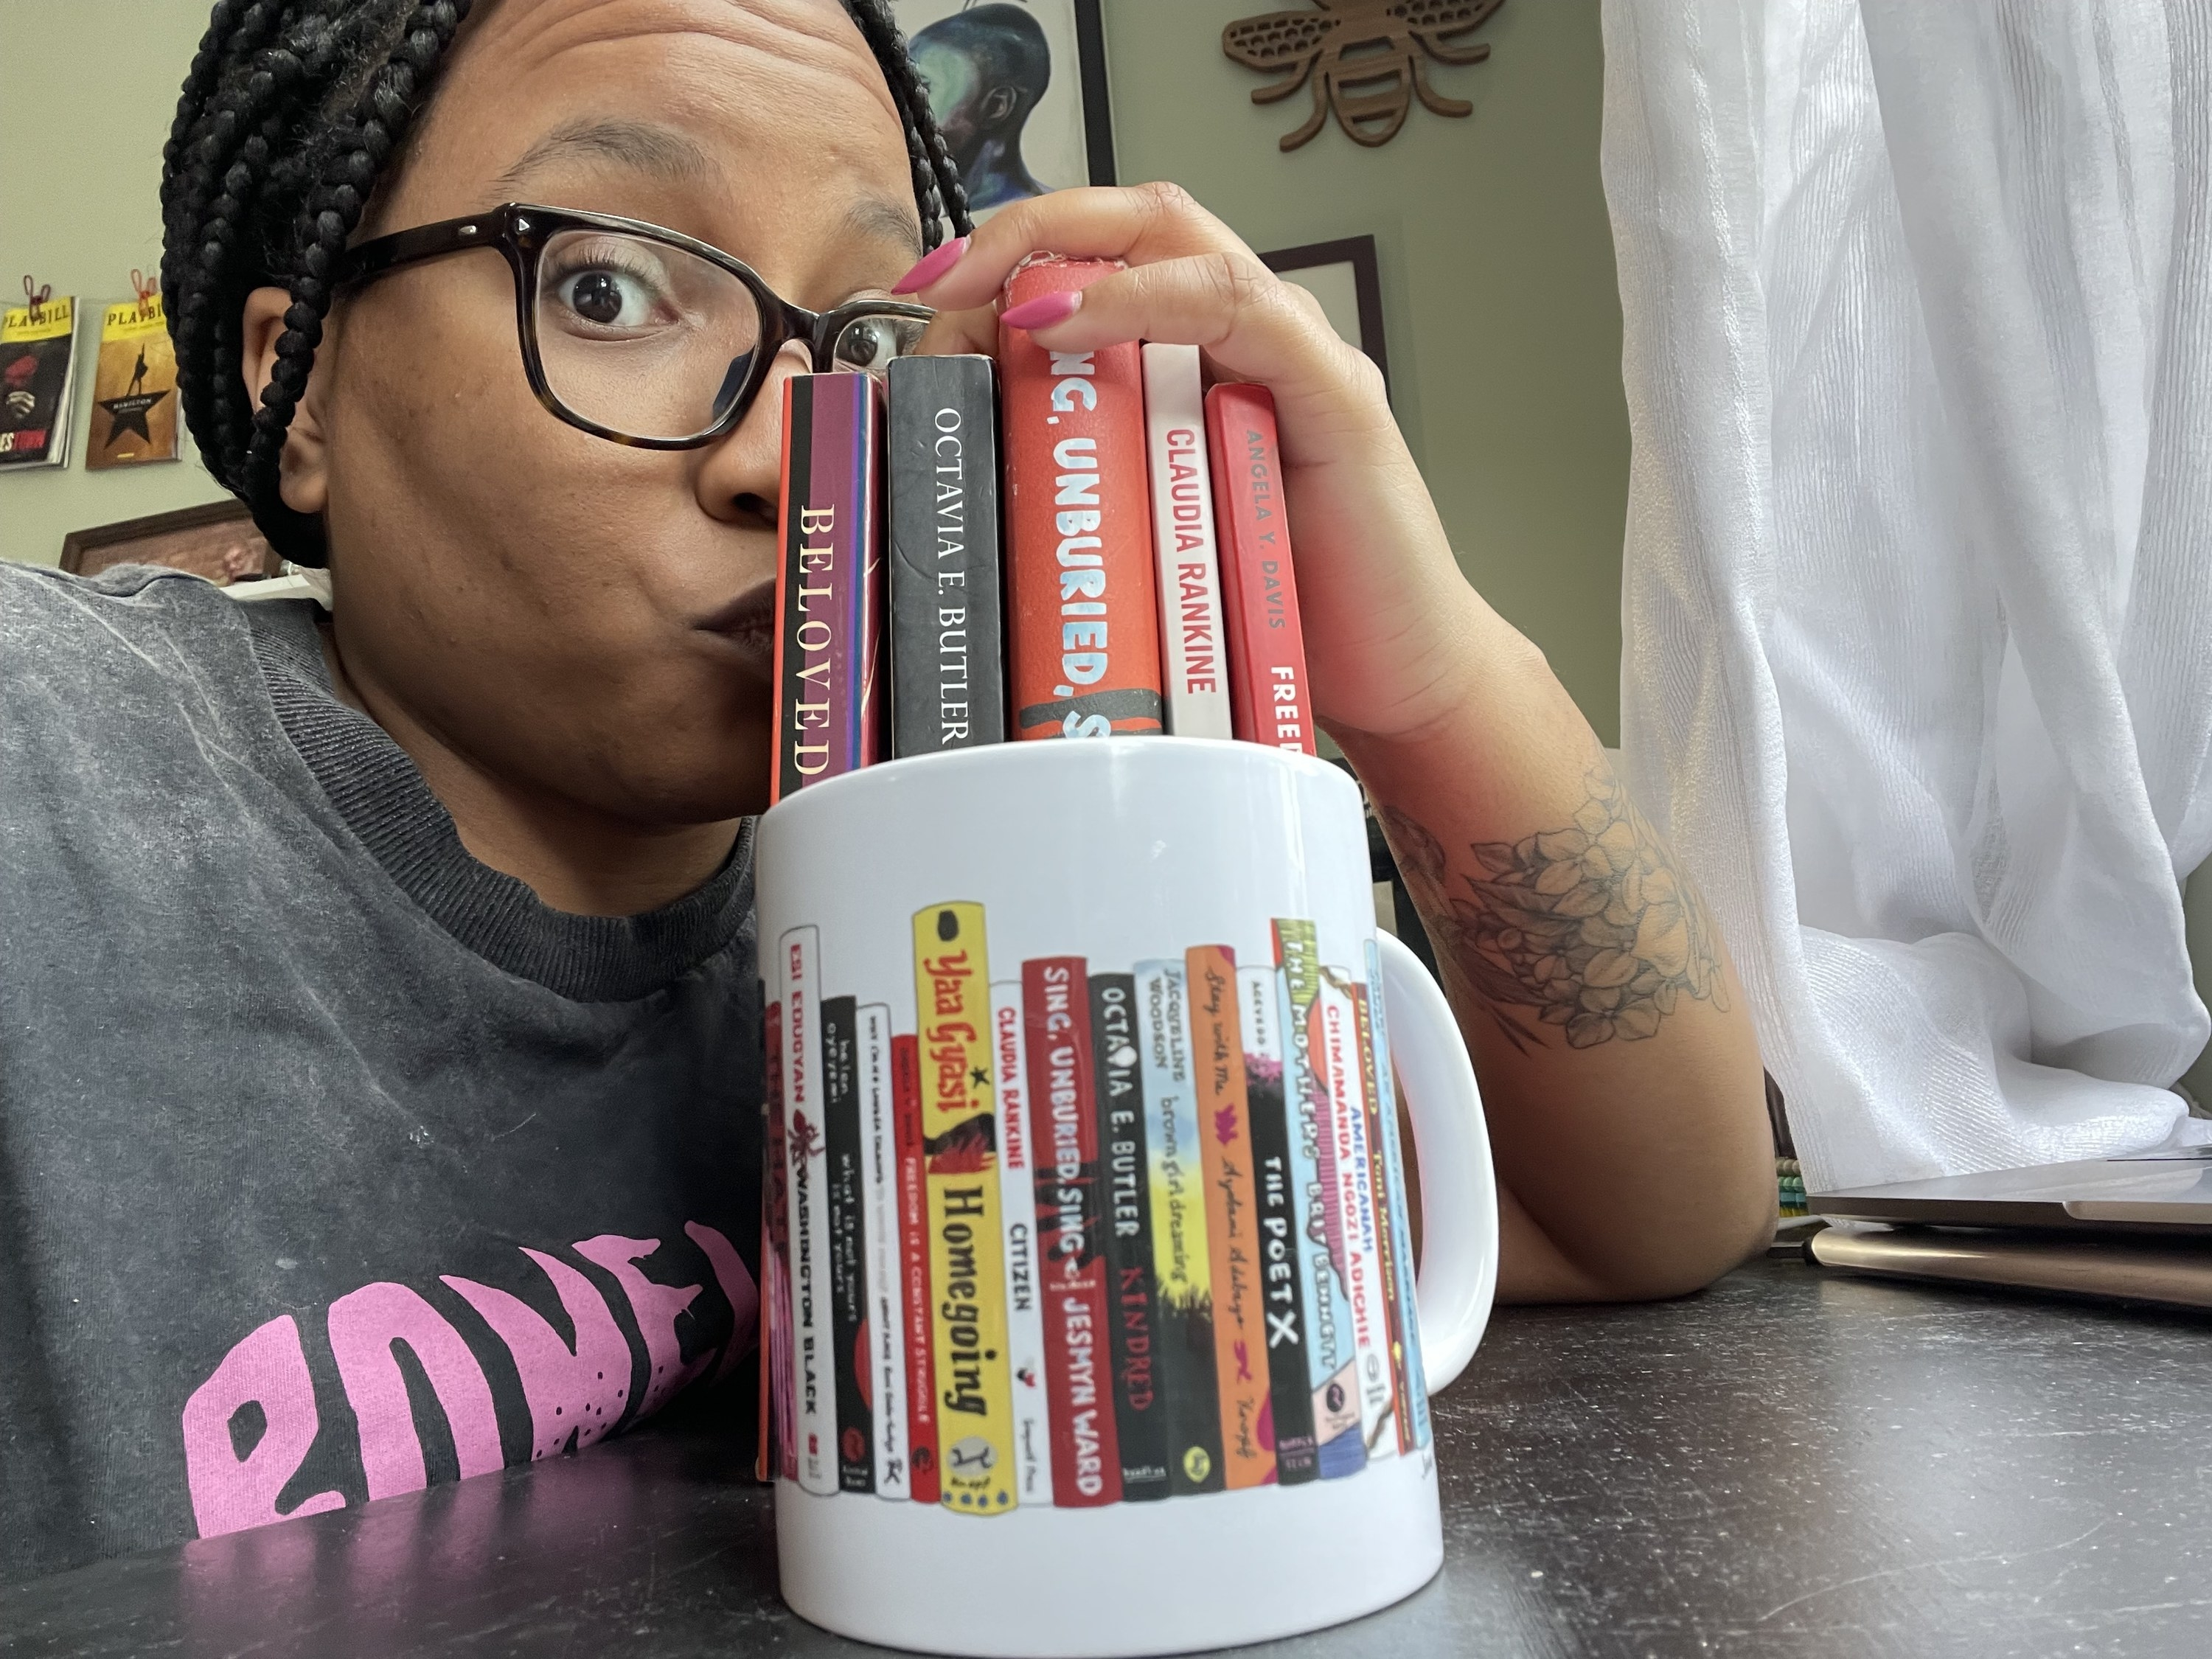 buzzfeed writer Taylor kissing a stack of books that mirror the books featured on the spines and vines mug